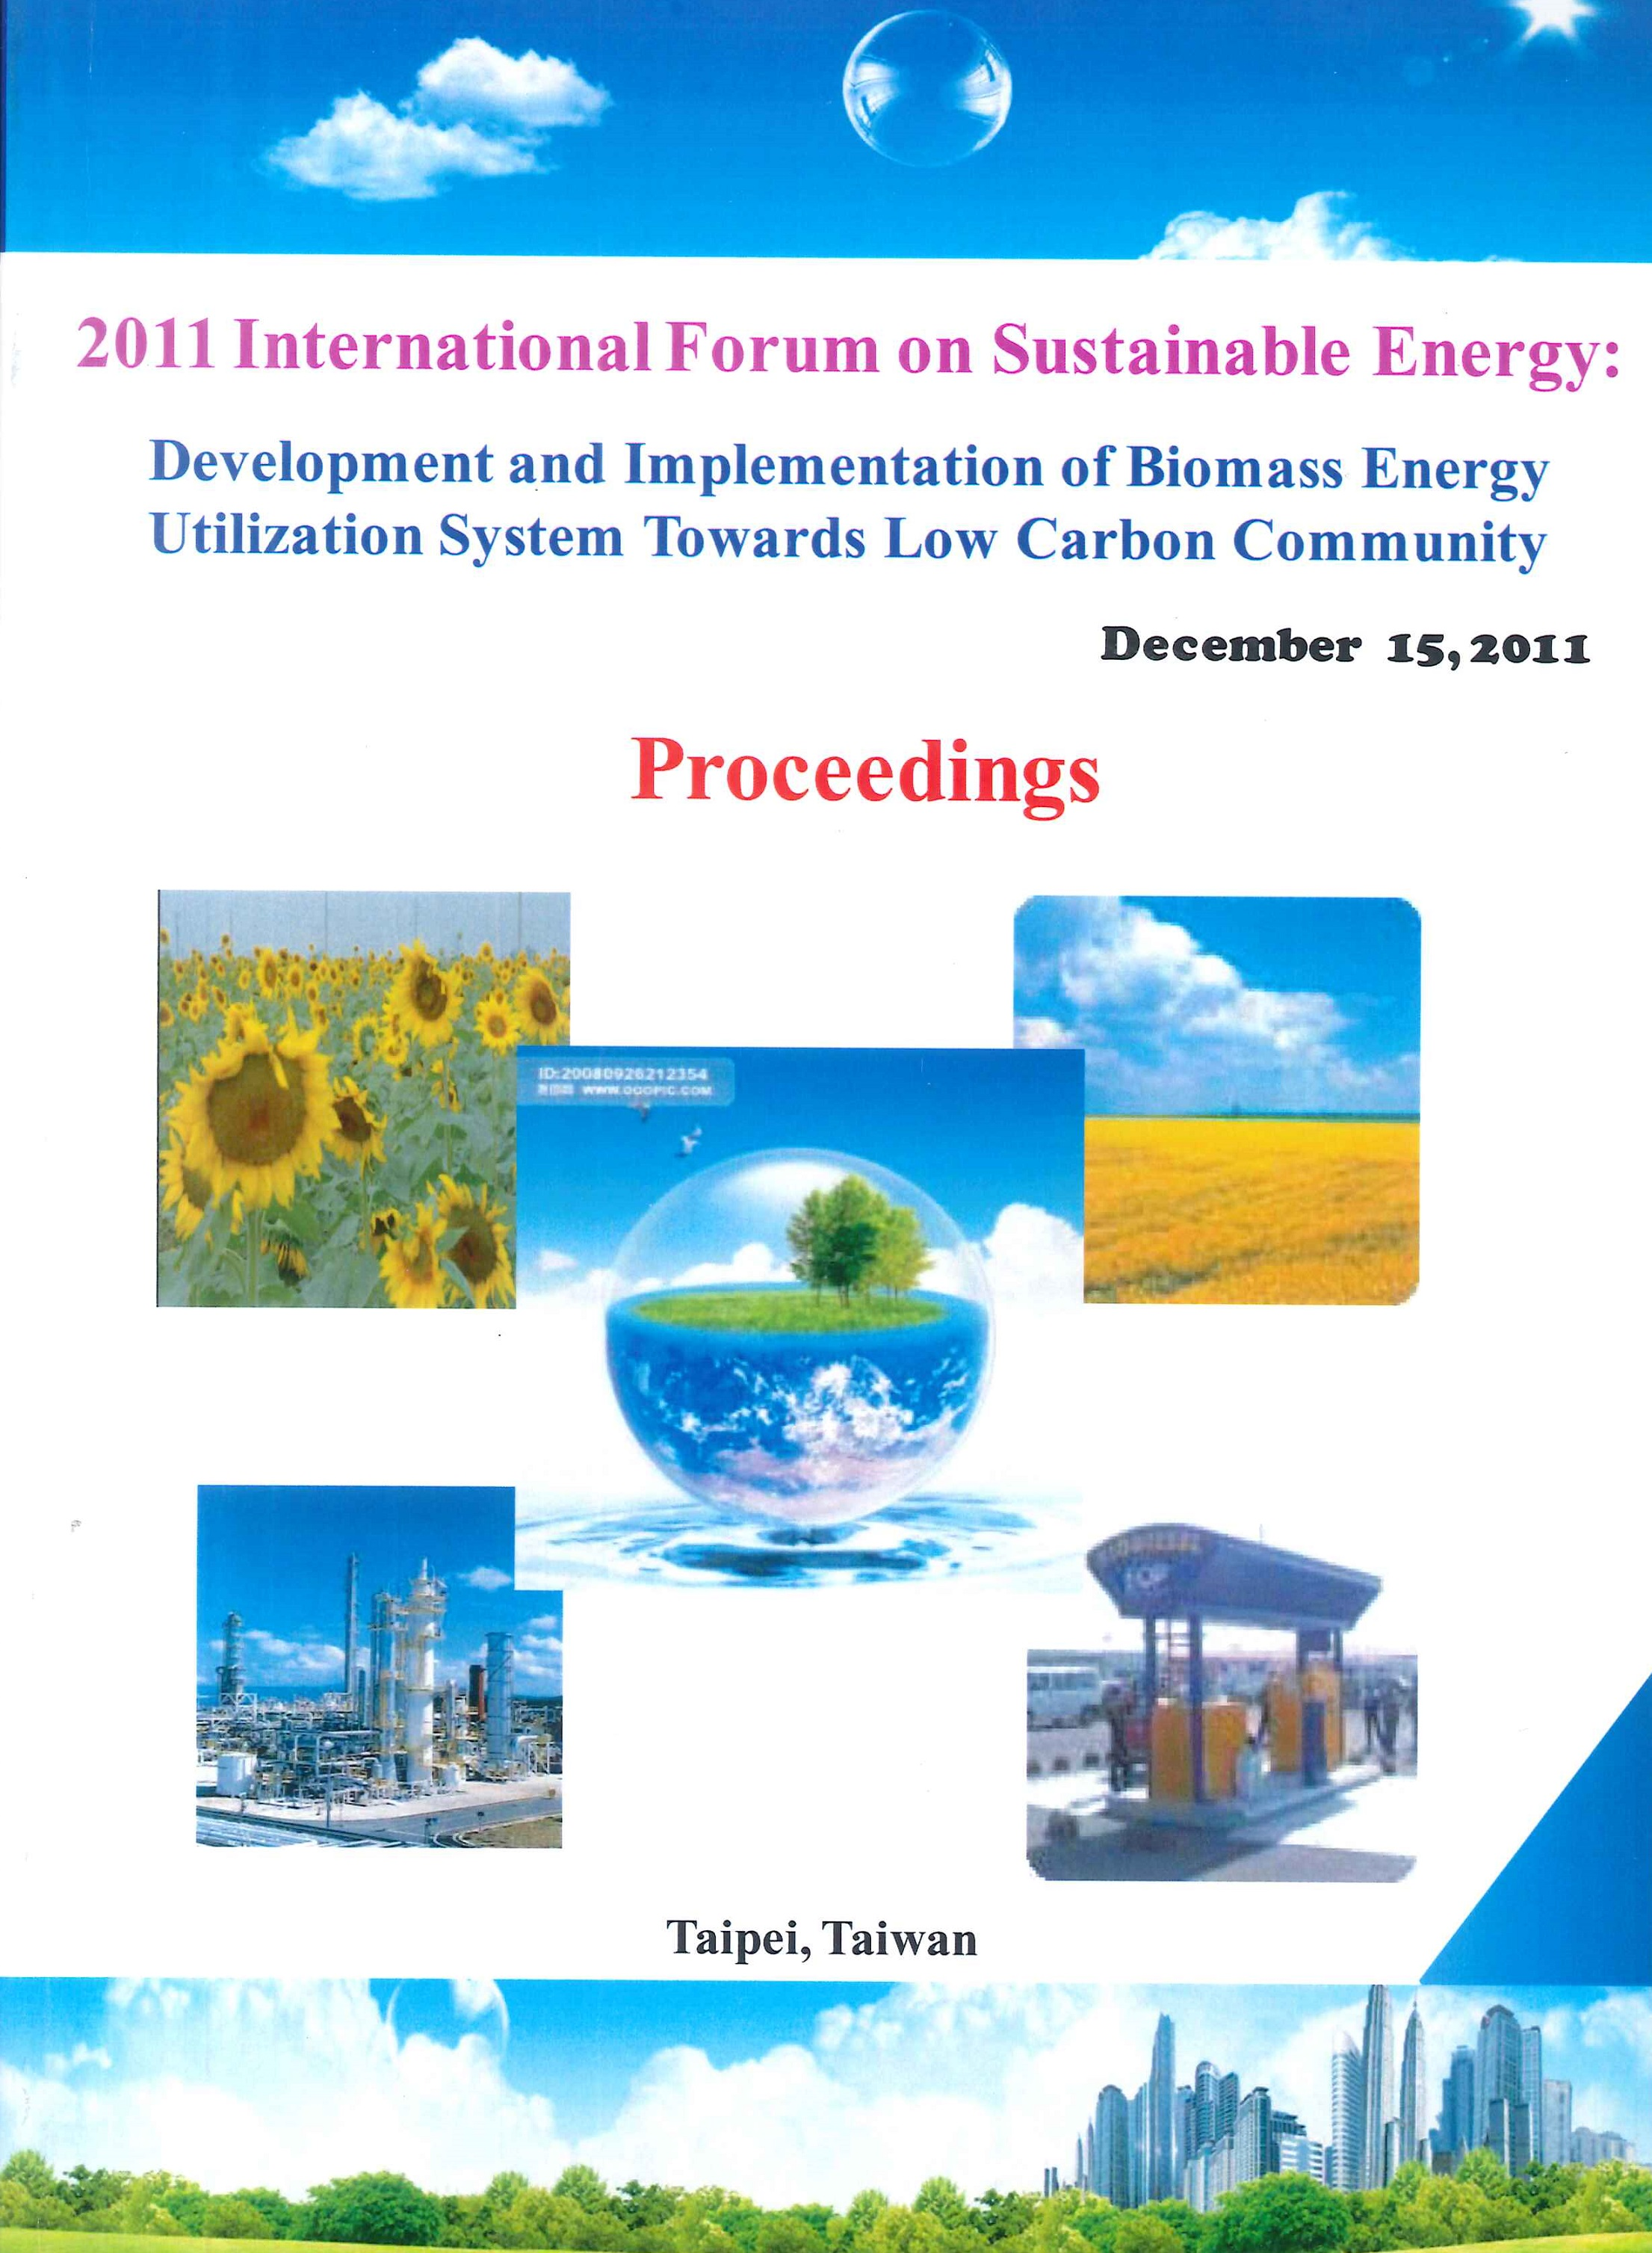 2011 International forum on sustainable energy:development and implementation of biomass energy utilization system towards low carbon community:proceedings